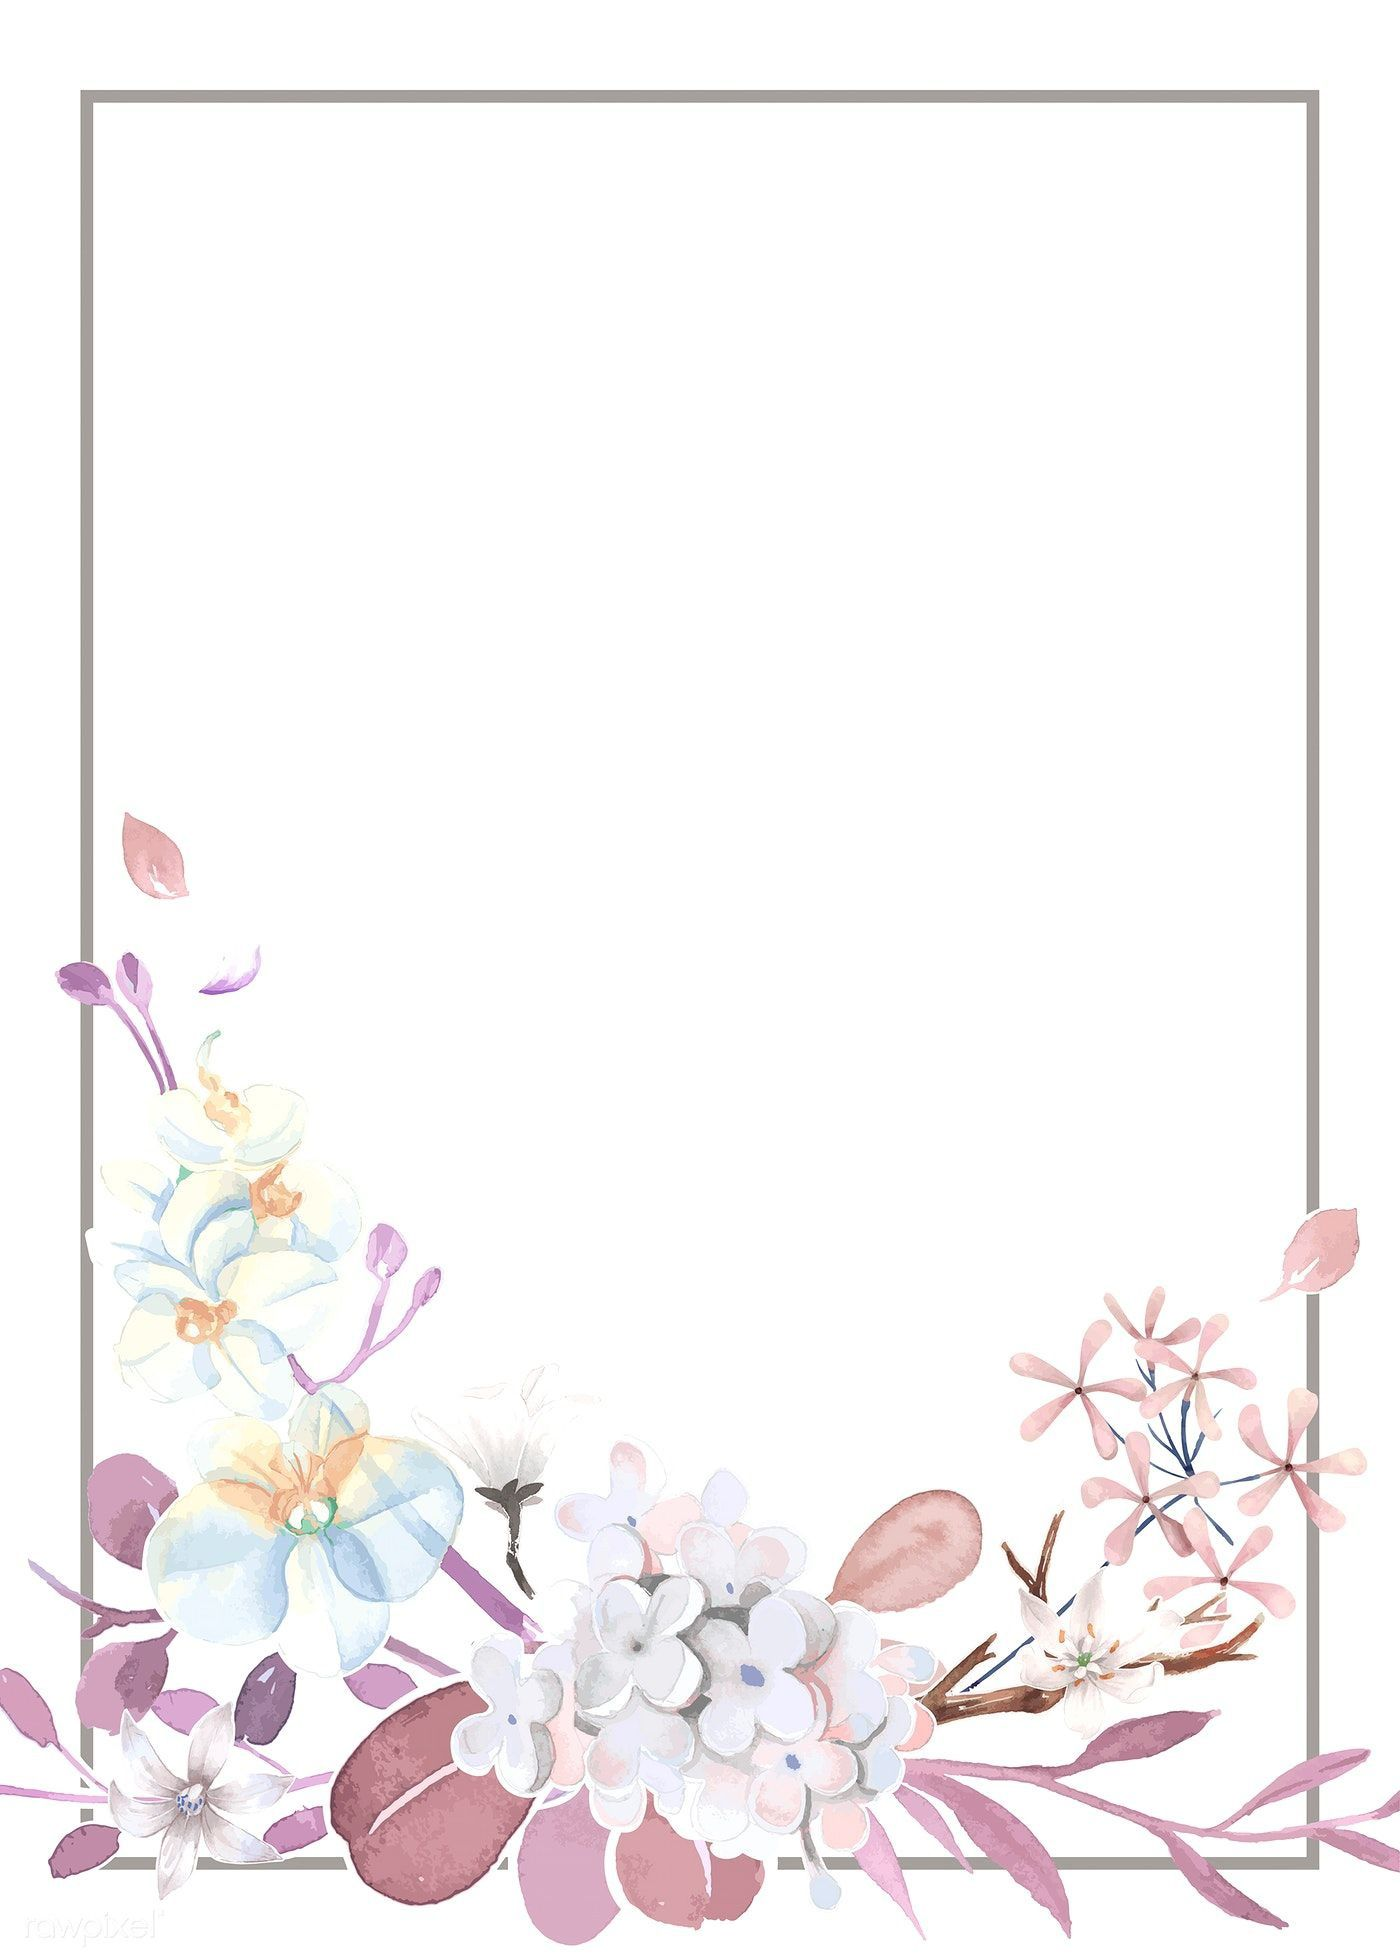 003 Fantastic Blank Birthday Card Template High Definition  Word Free Printable Greeting DownloadFull